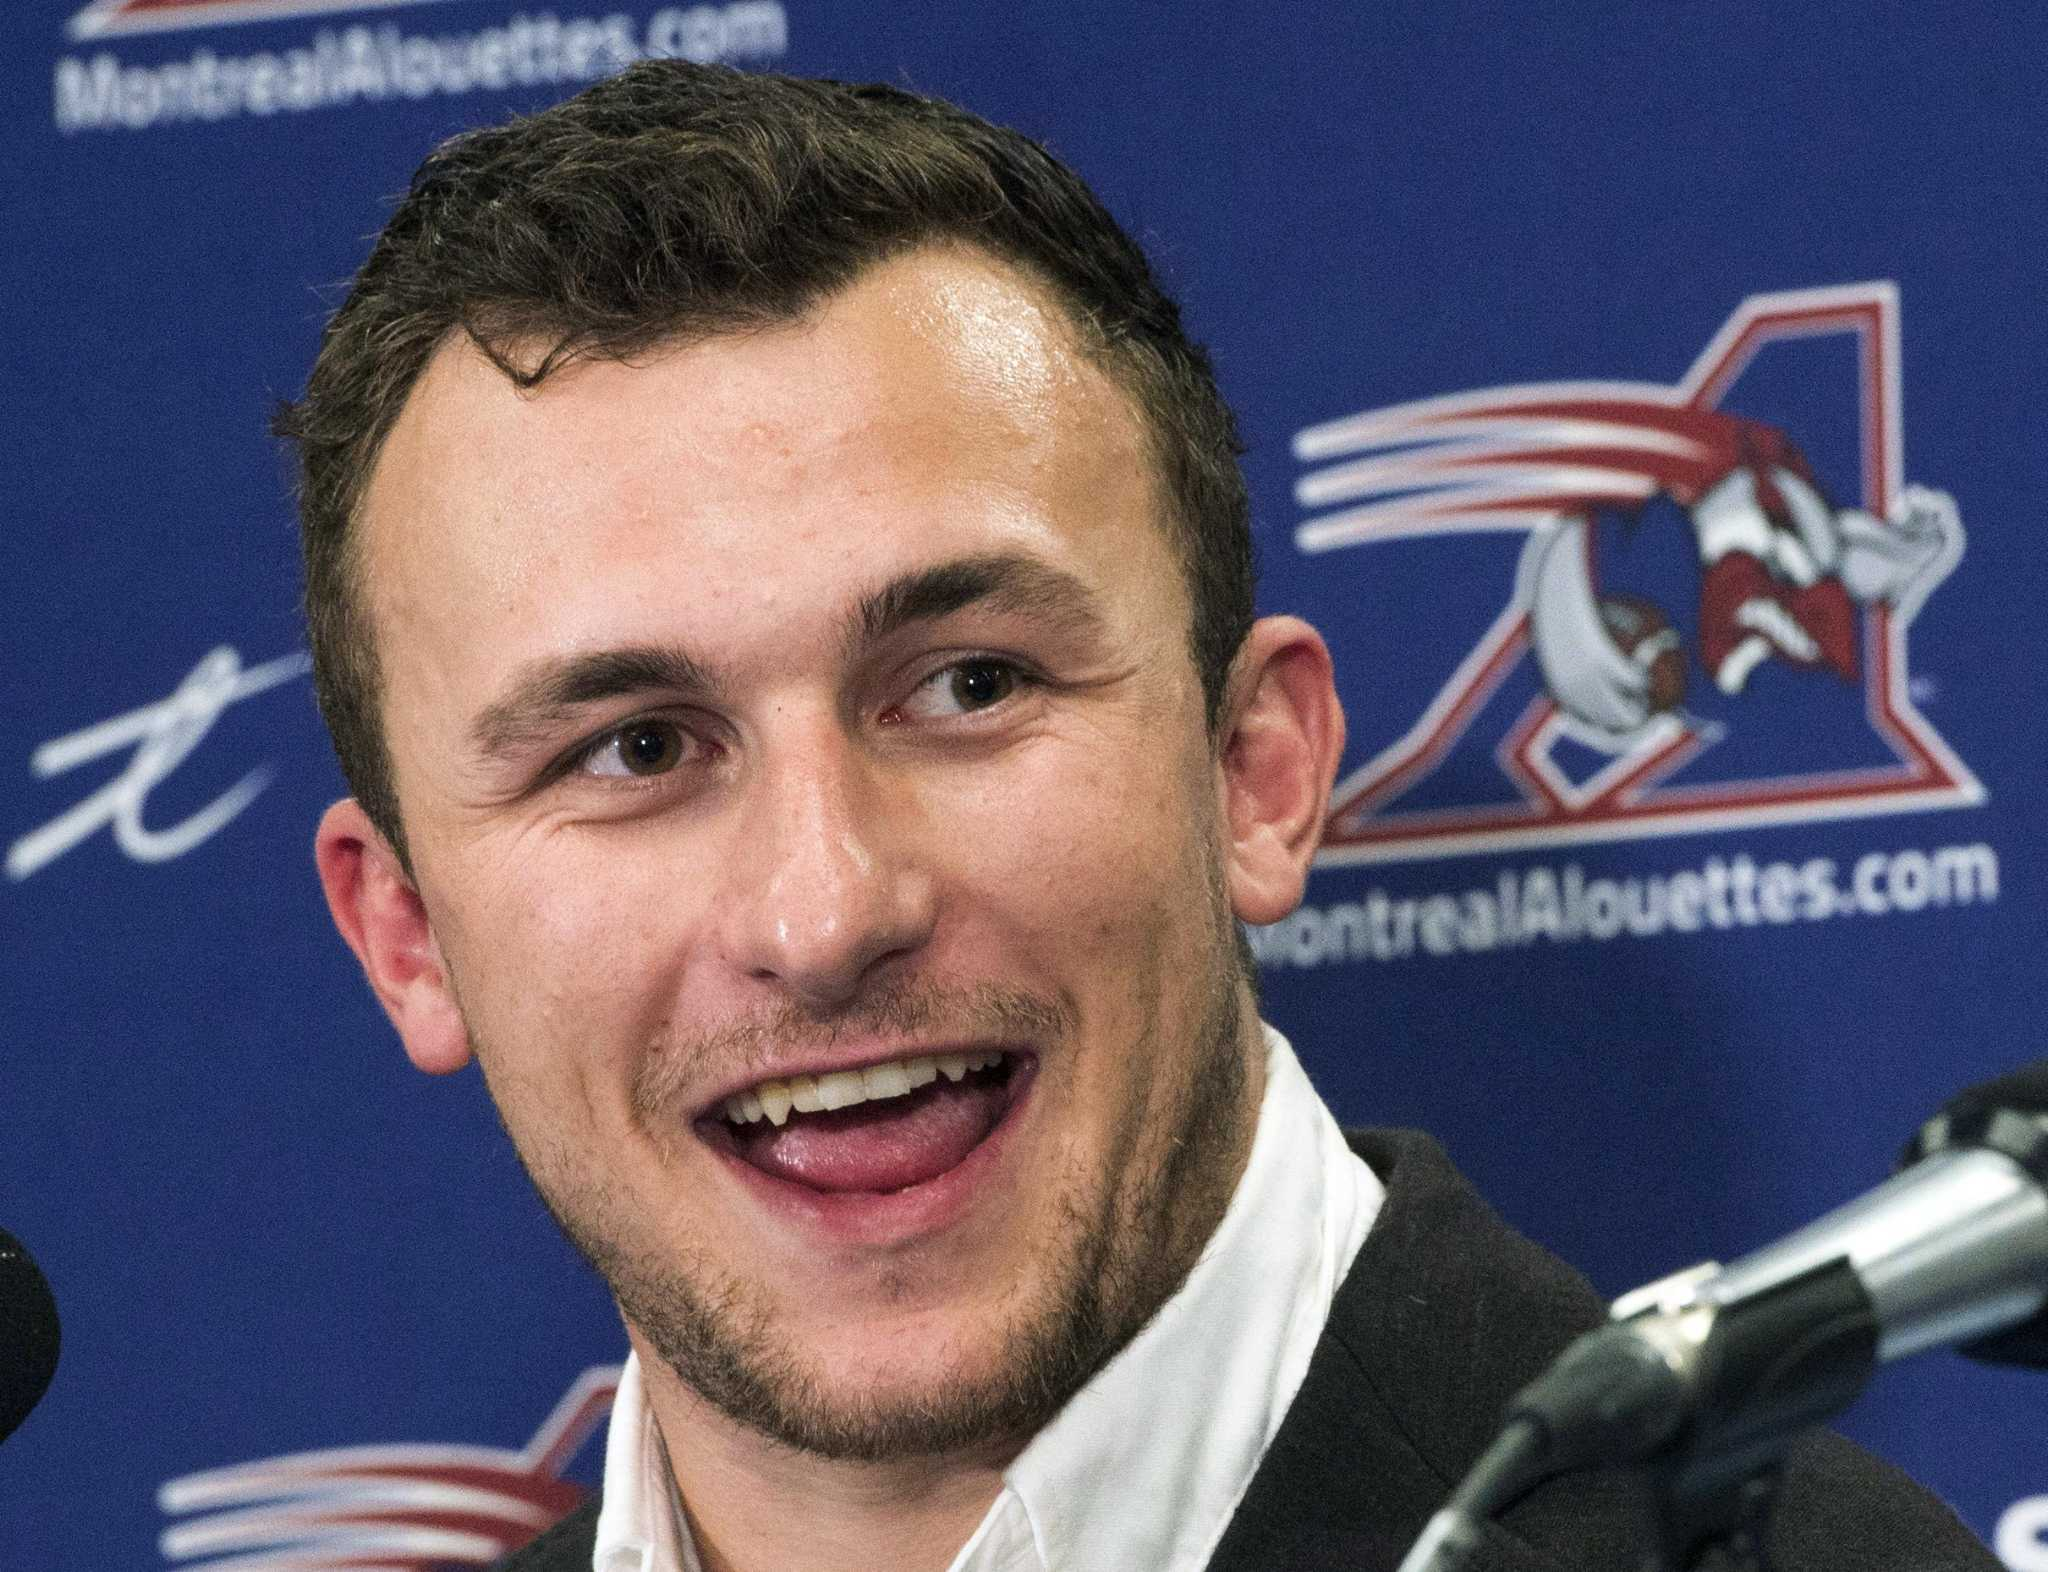 Timing wasn't right for San Antonio Commanders to add Manziel